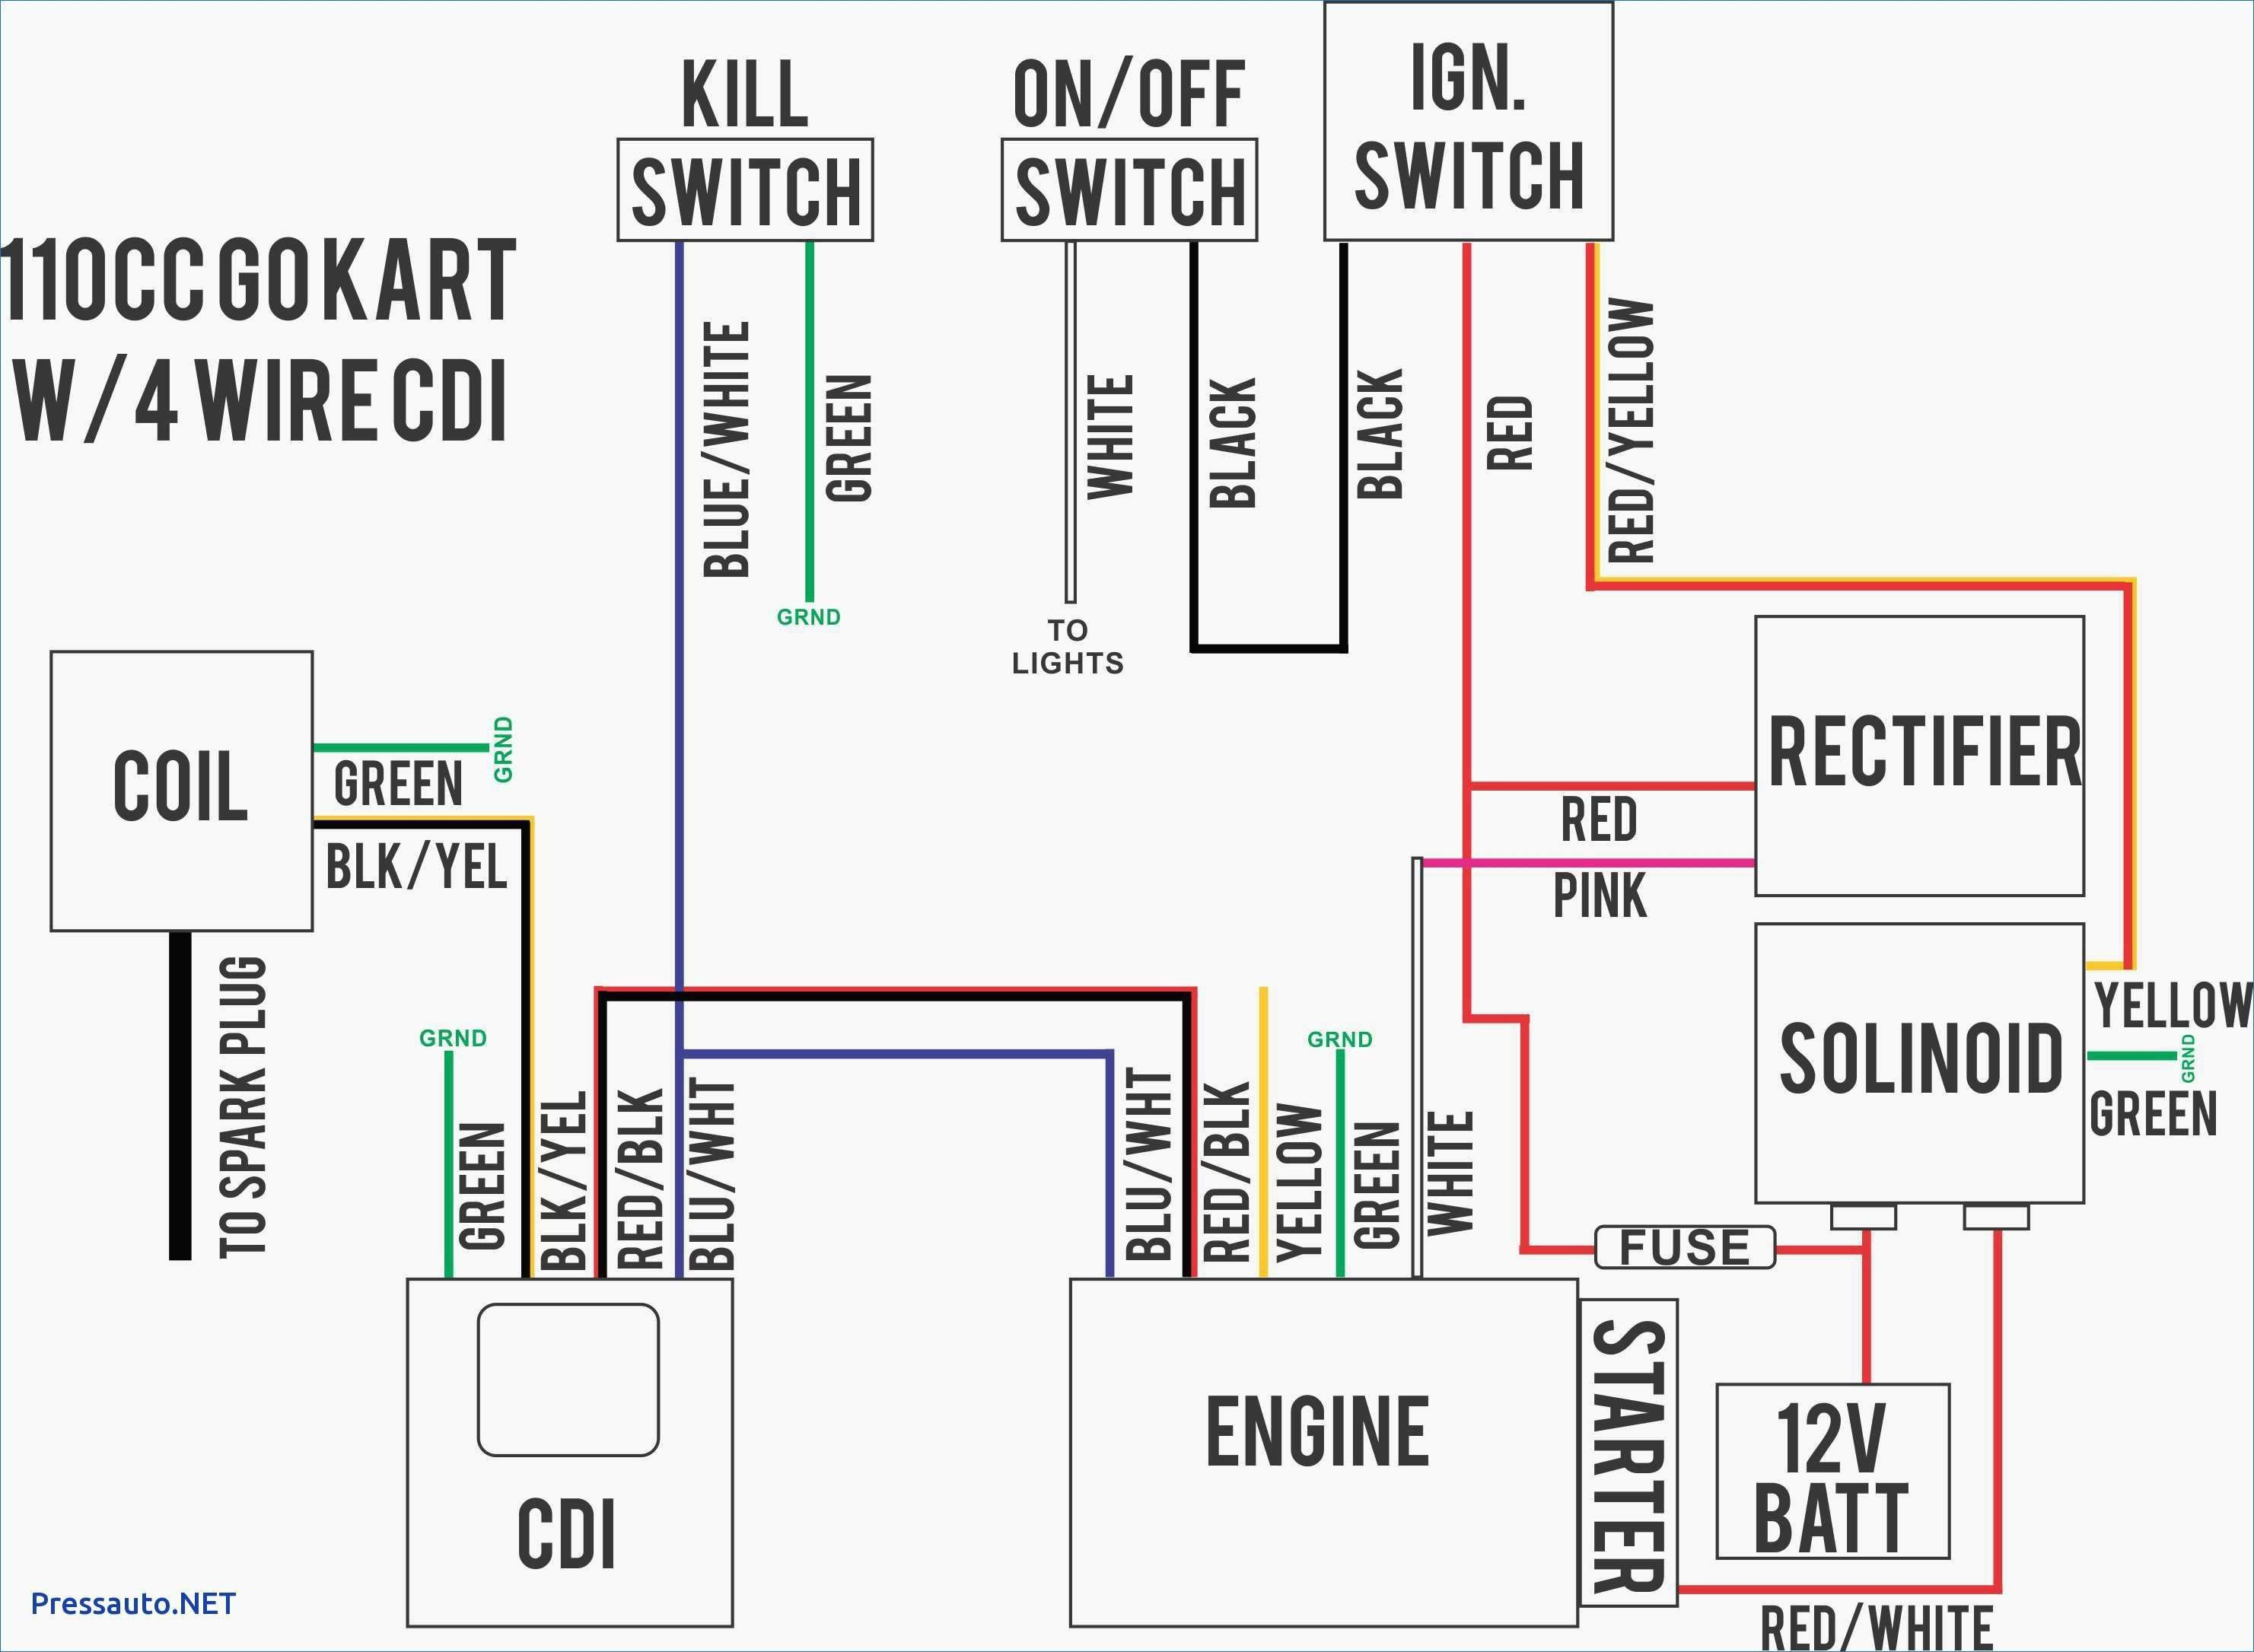 wiring diagram for pit bike inner get free image about wiring home Tusk Dual Sport Wiring Diagram